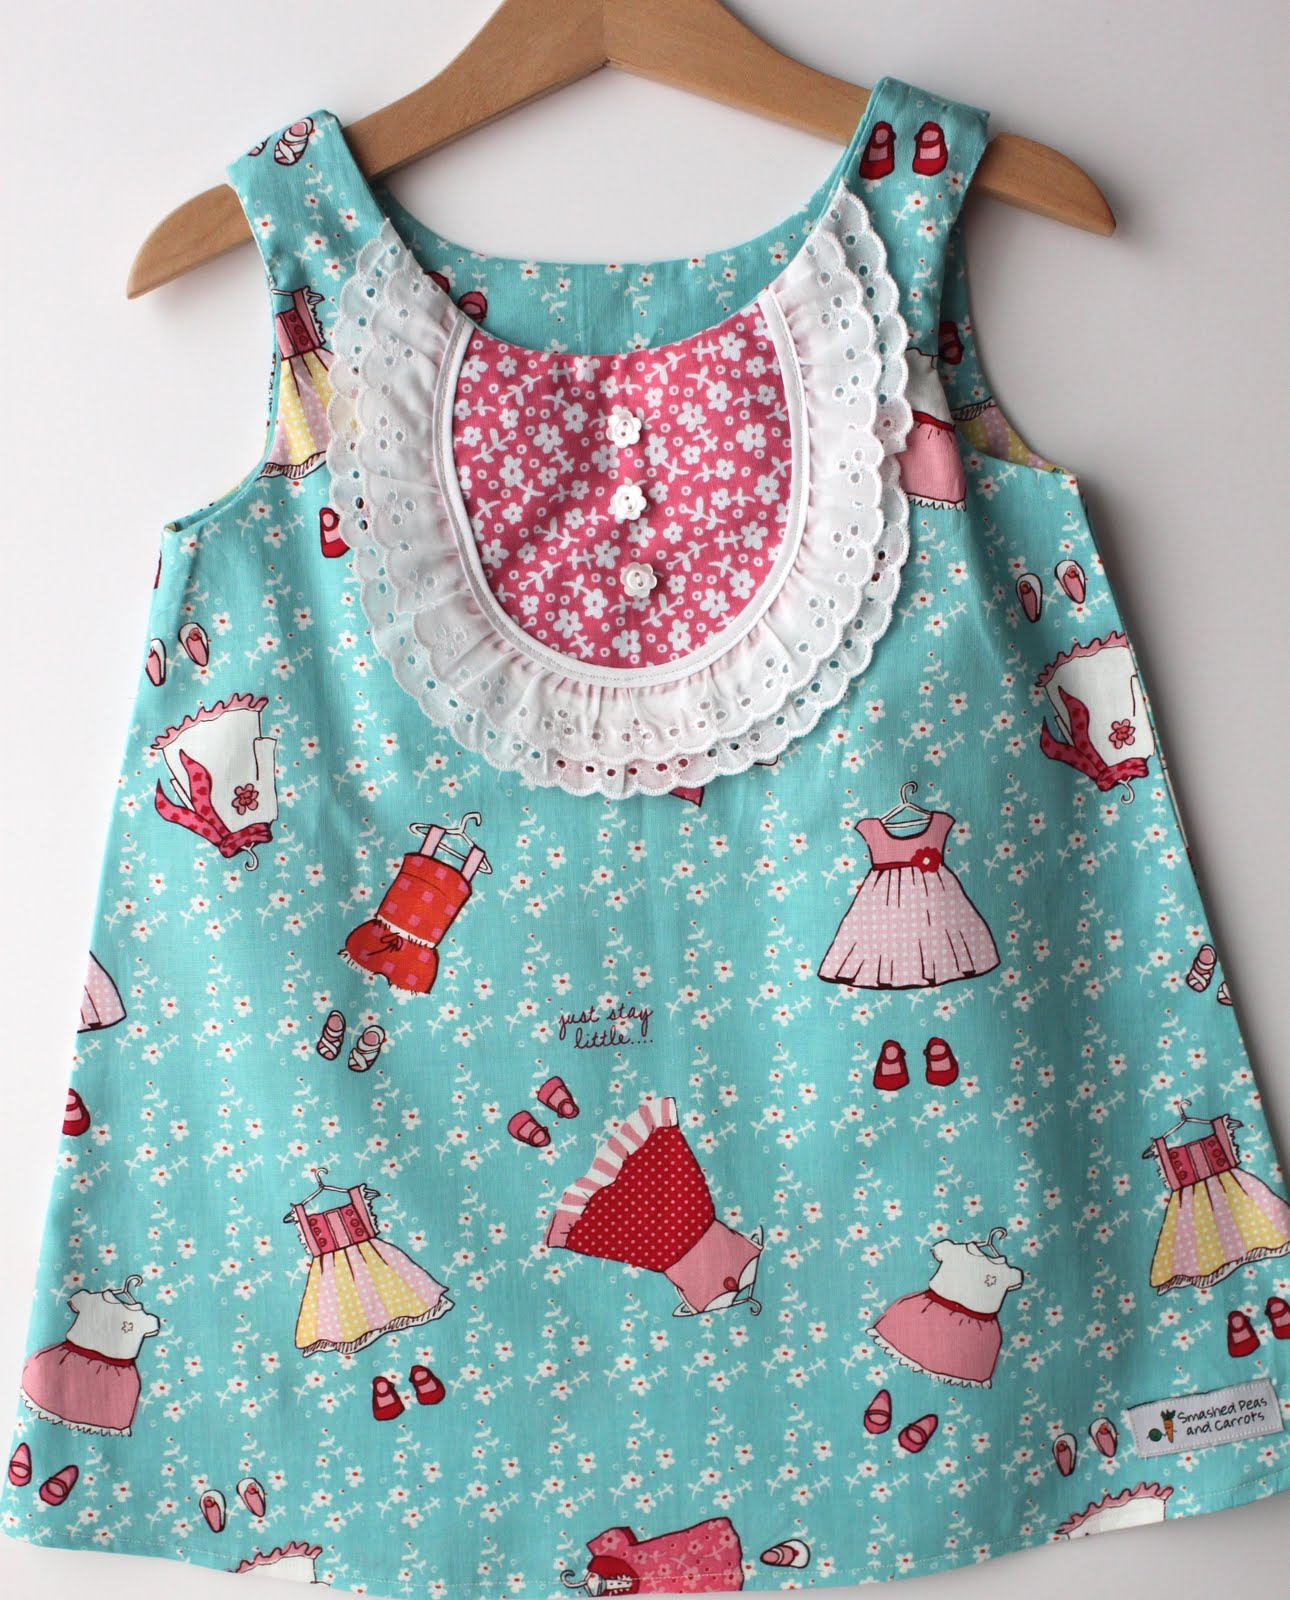 Children at Play Party Dresses - Smashed Peas & Carrots